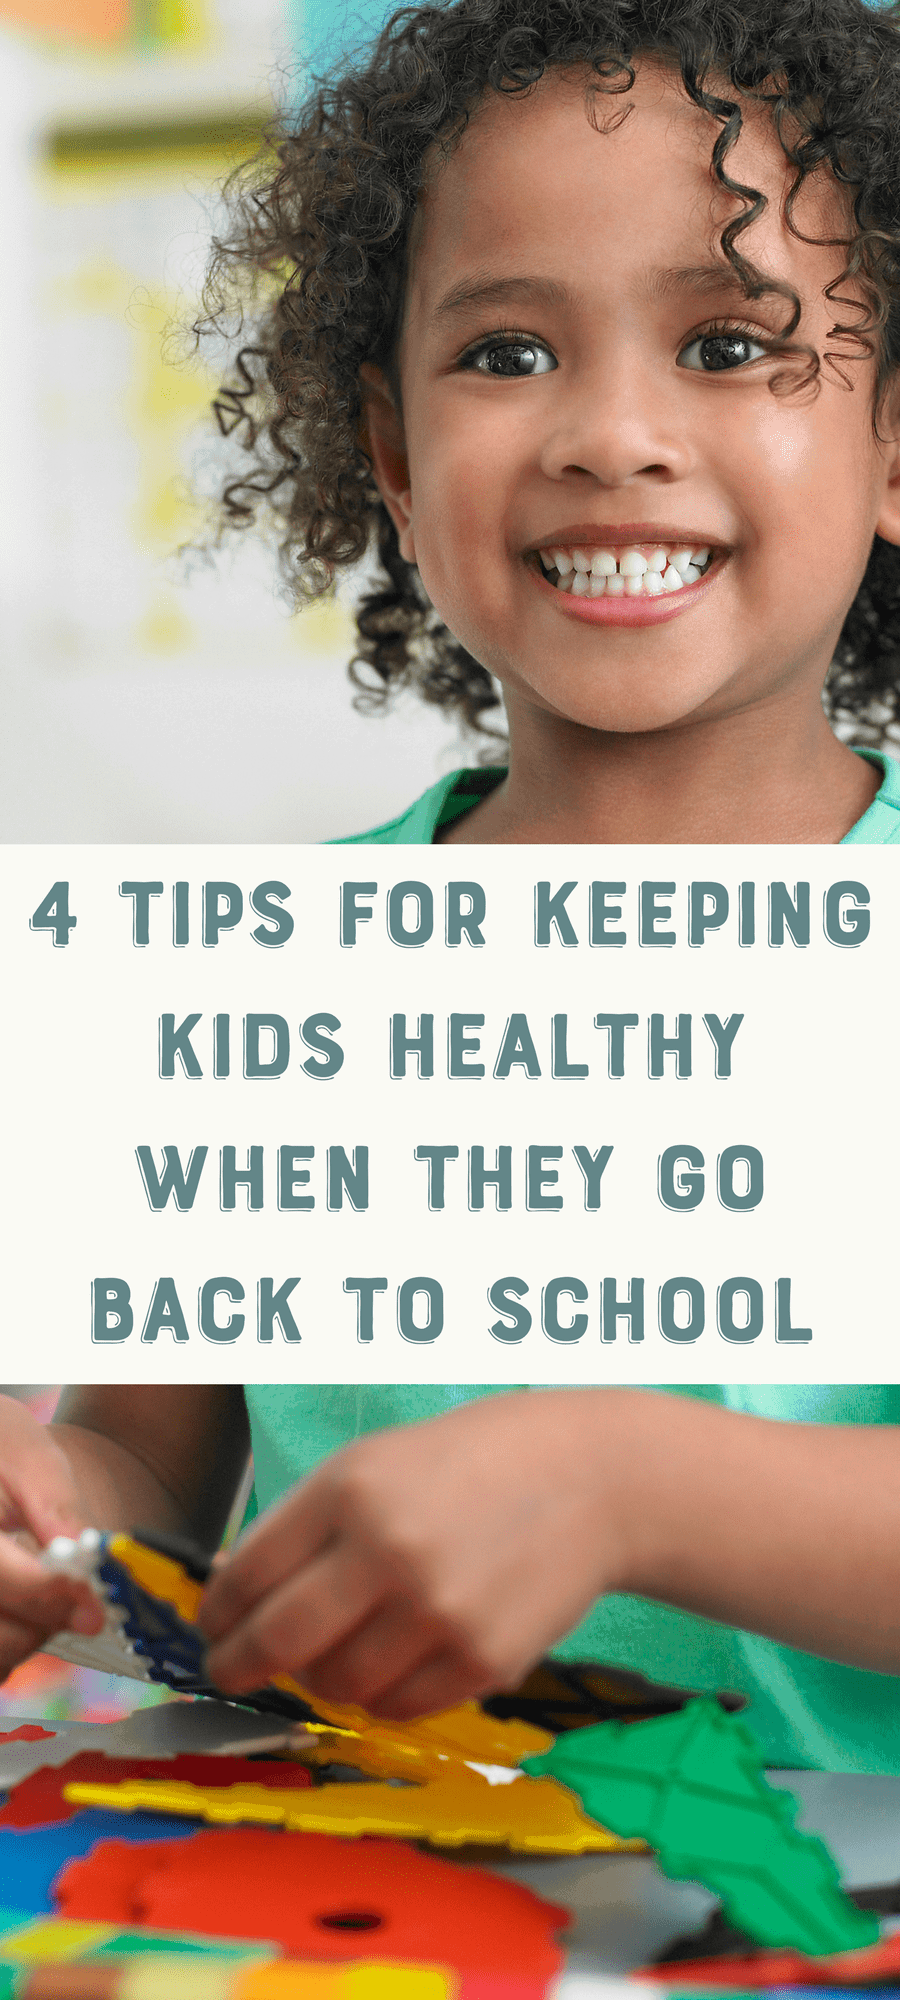 4 Tips for Keeping Kids Healthy When They Go Back to School 2